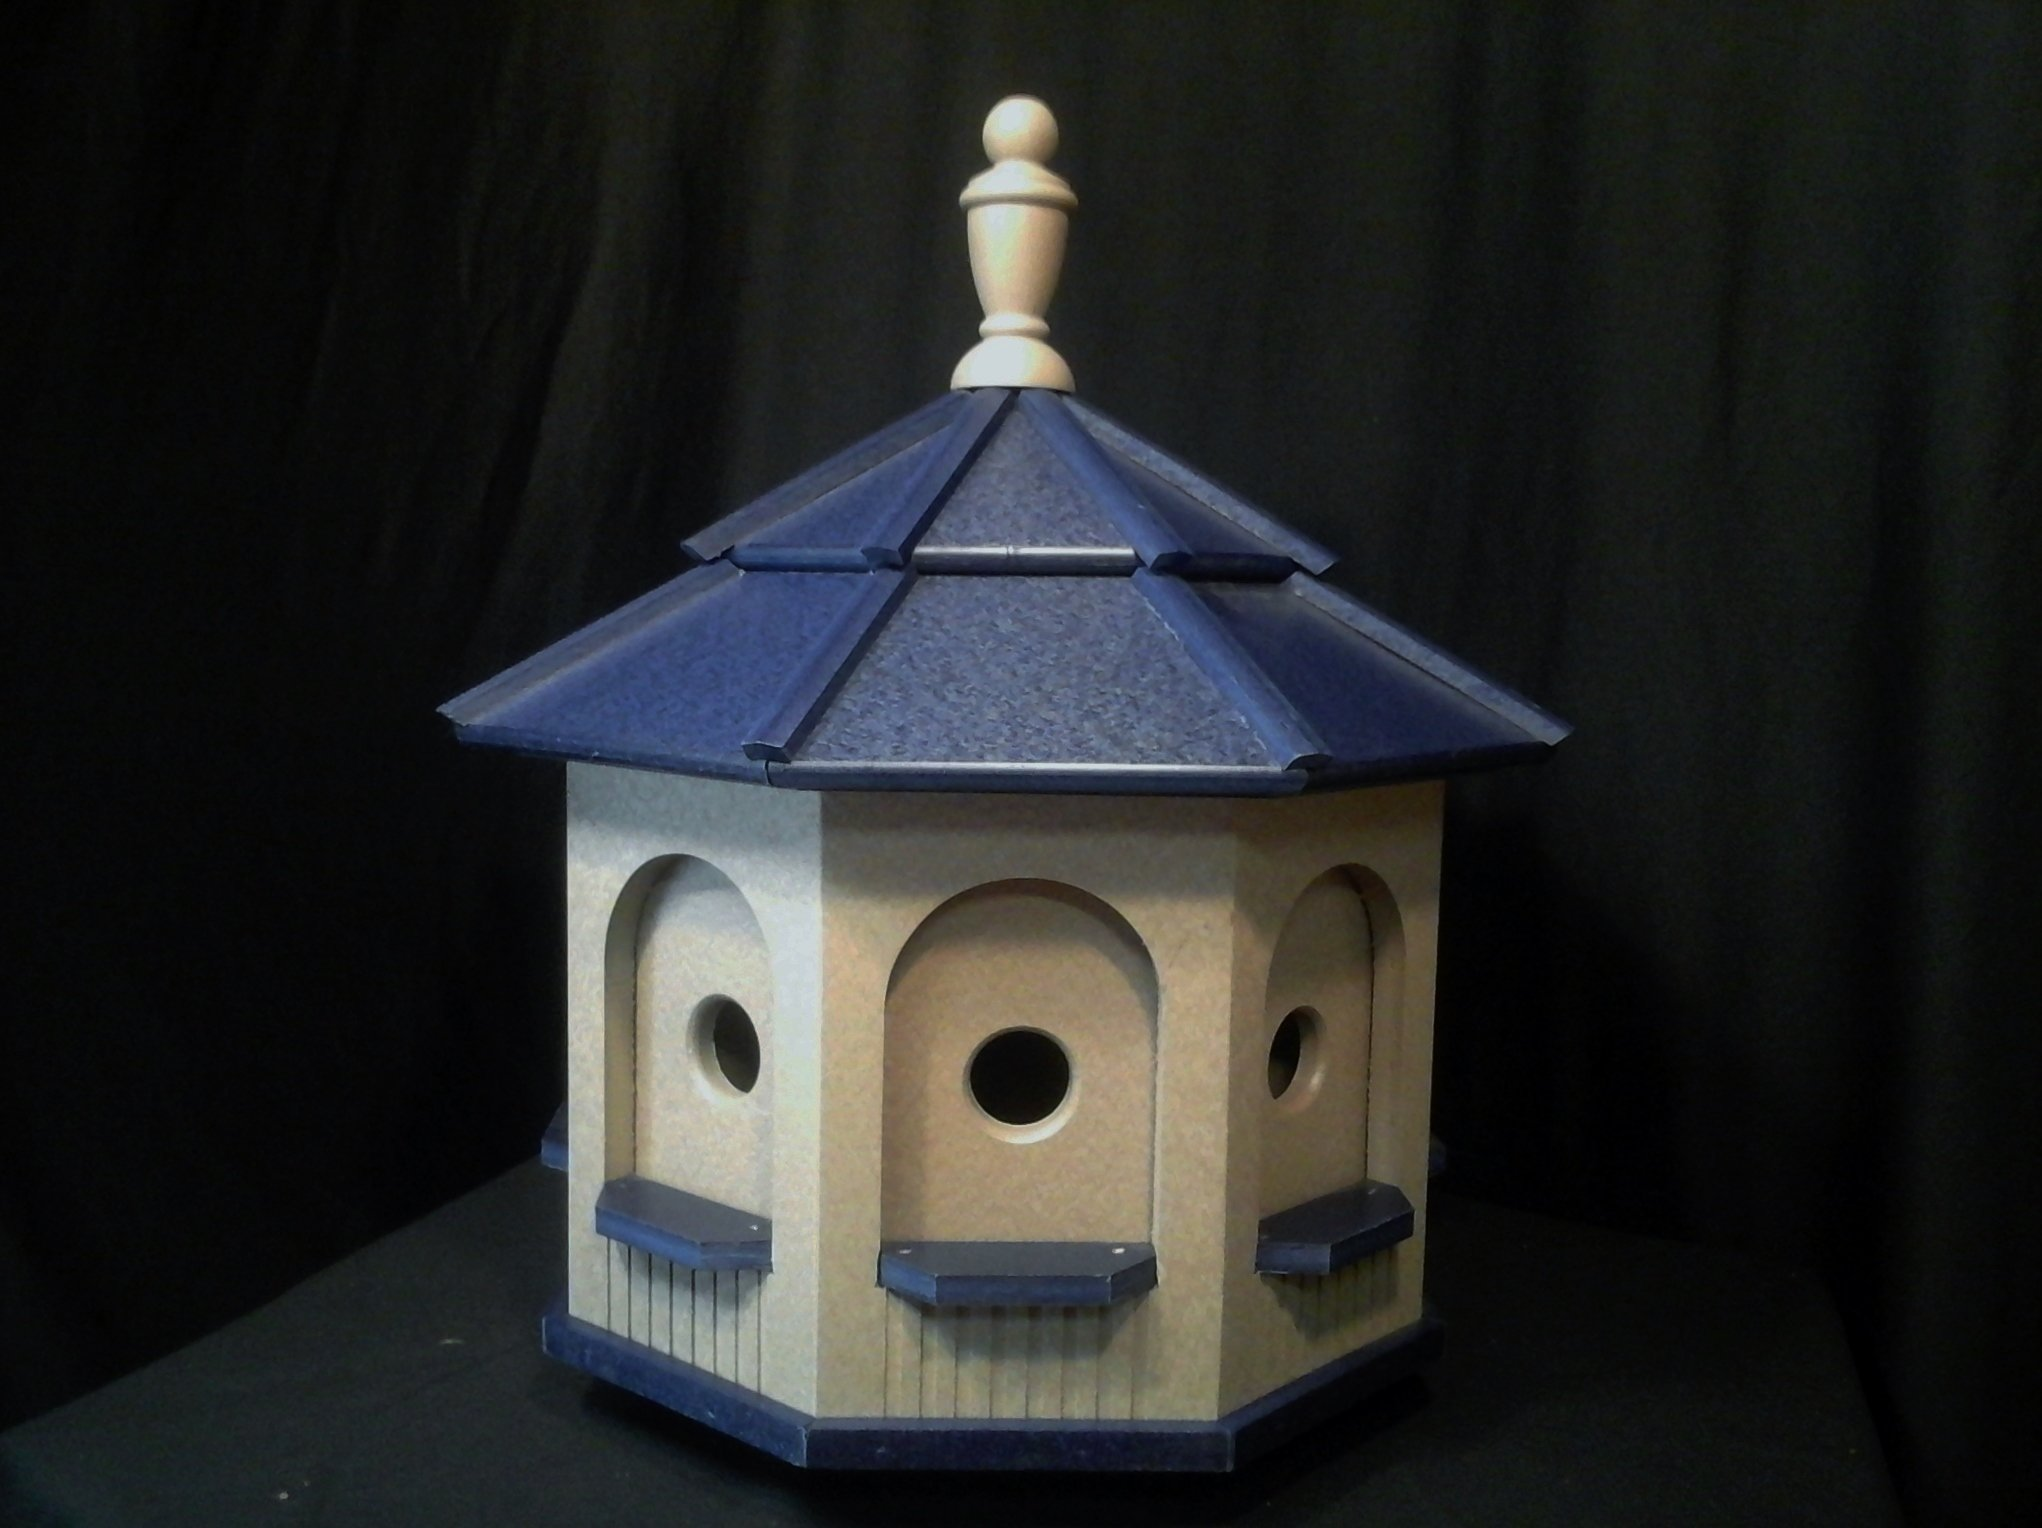 Large Poly Handcrafted Handmade Homemade Birdhouse Garden Clay & Blue Roof